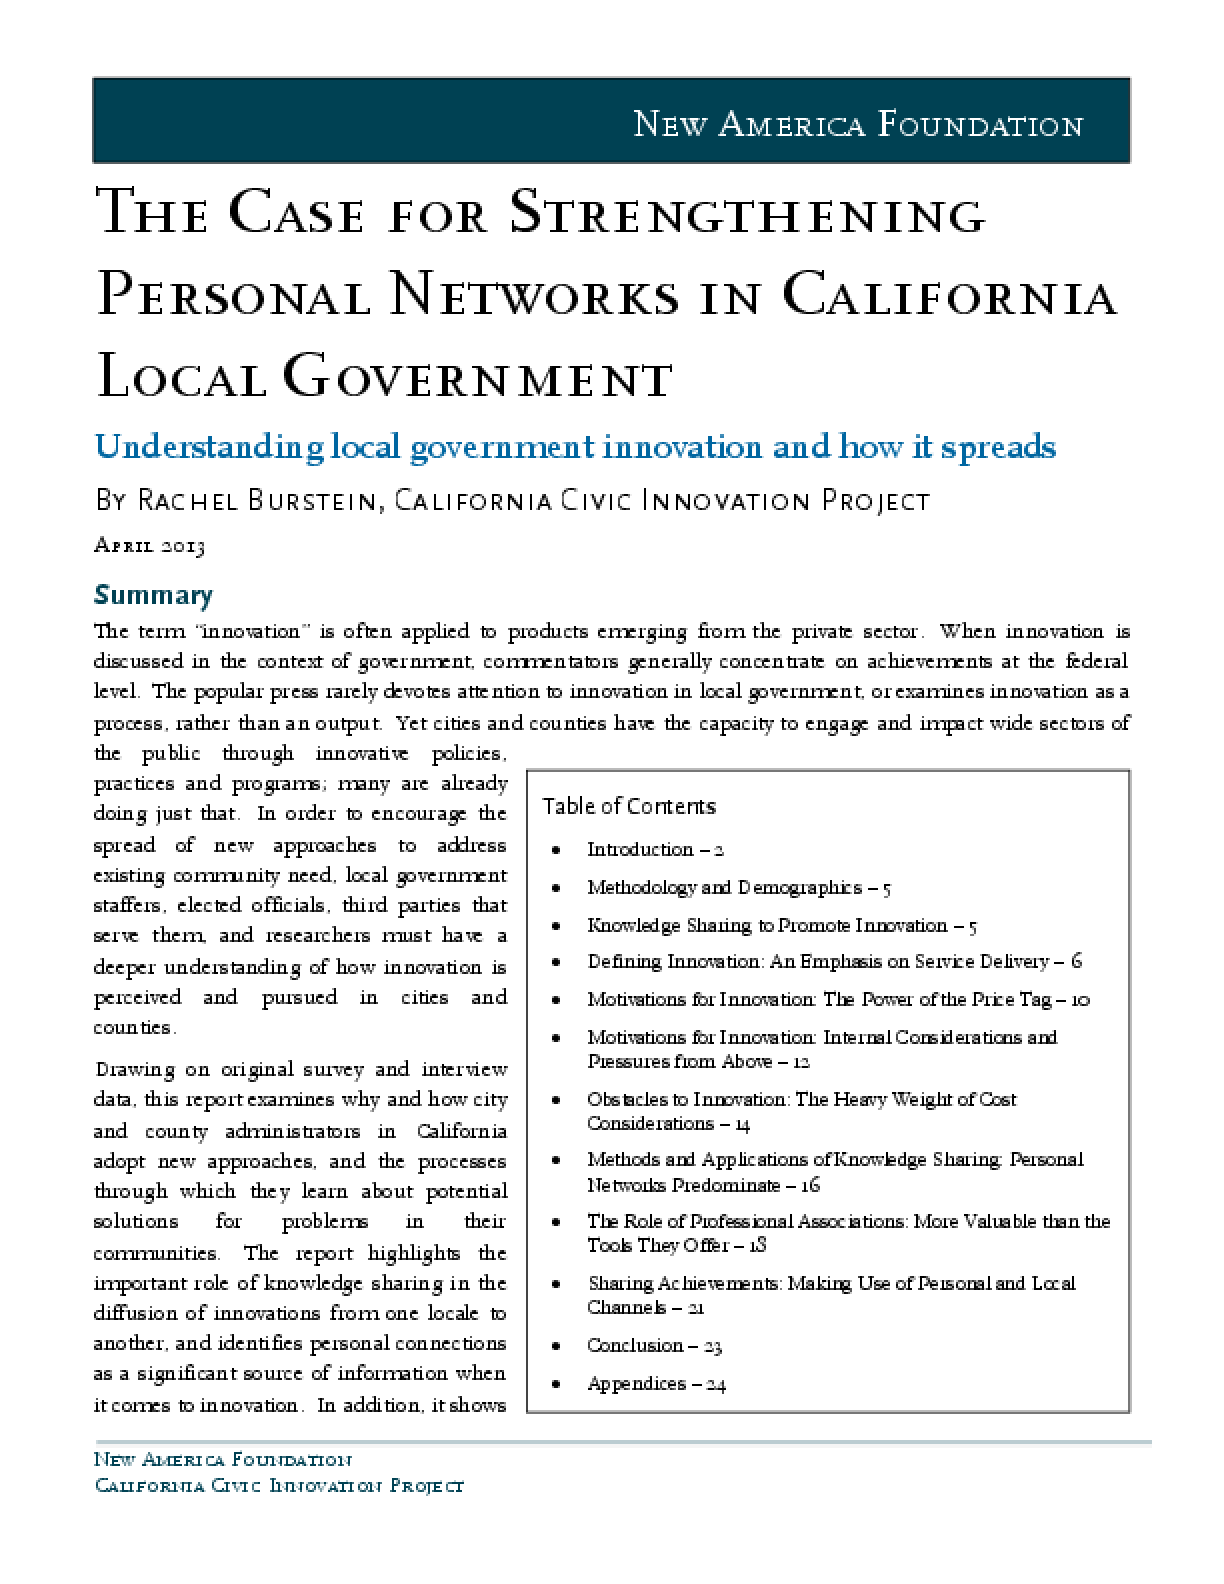 The Case for Strengthening Personal Networks in CA Local Government